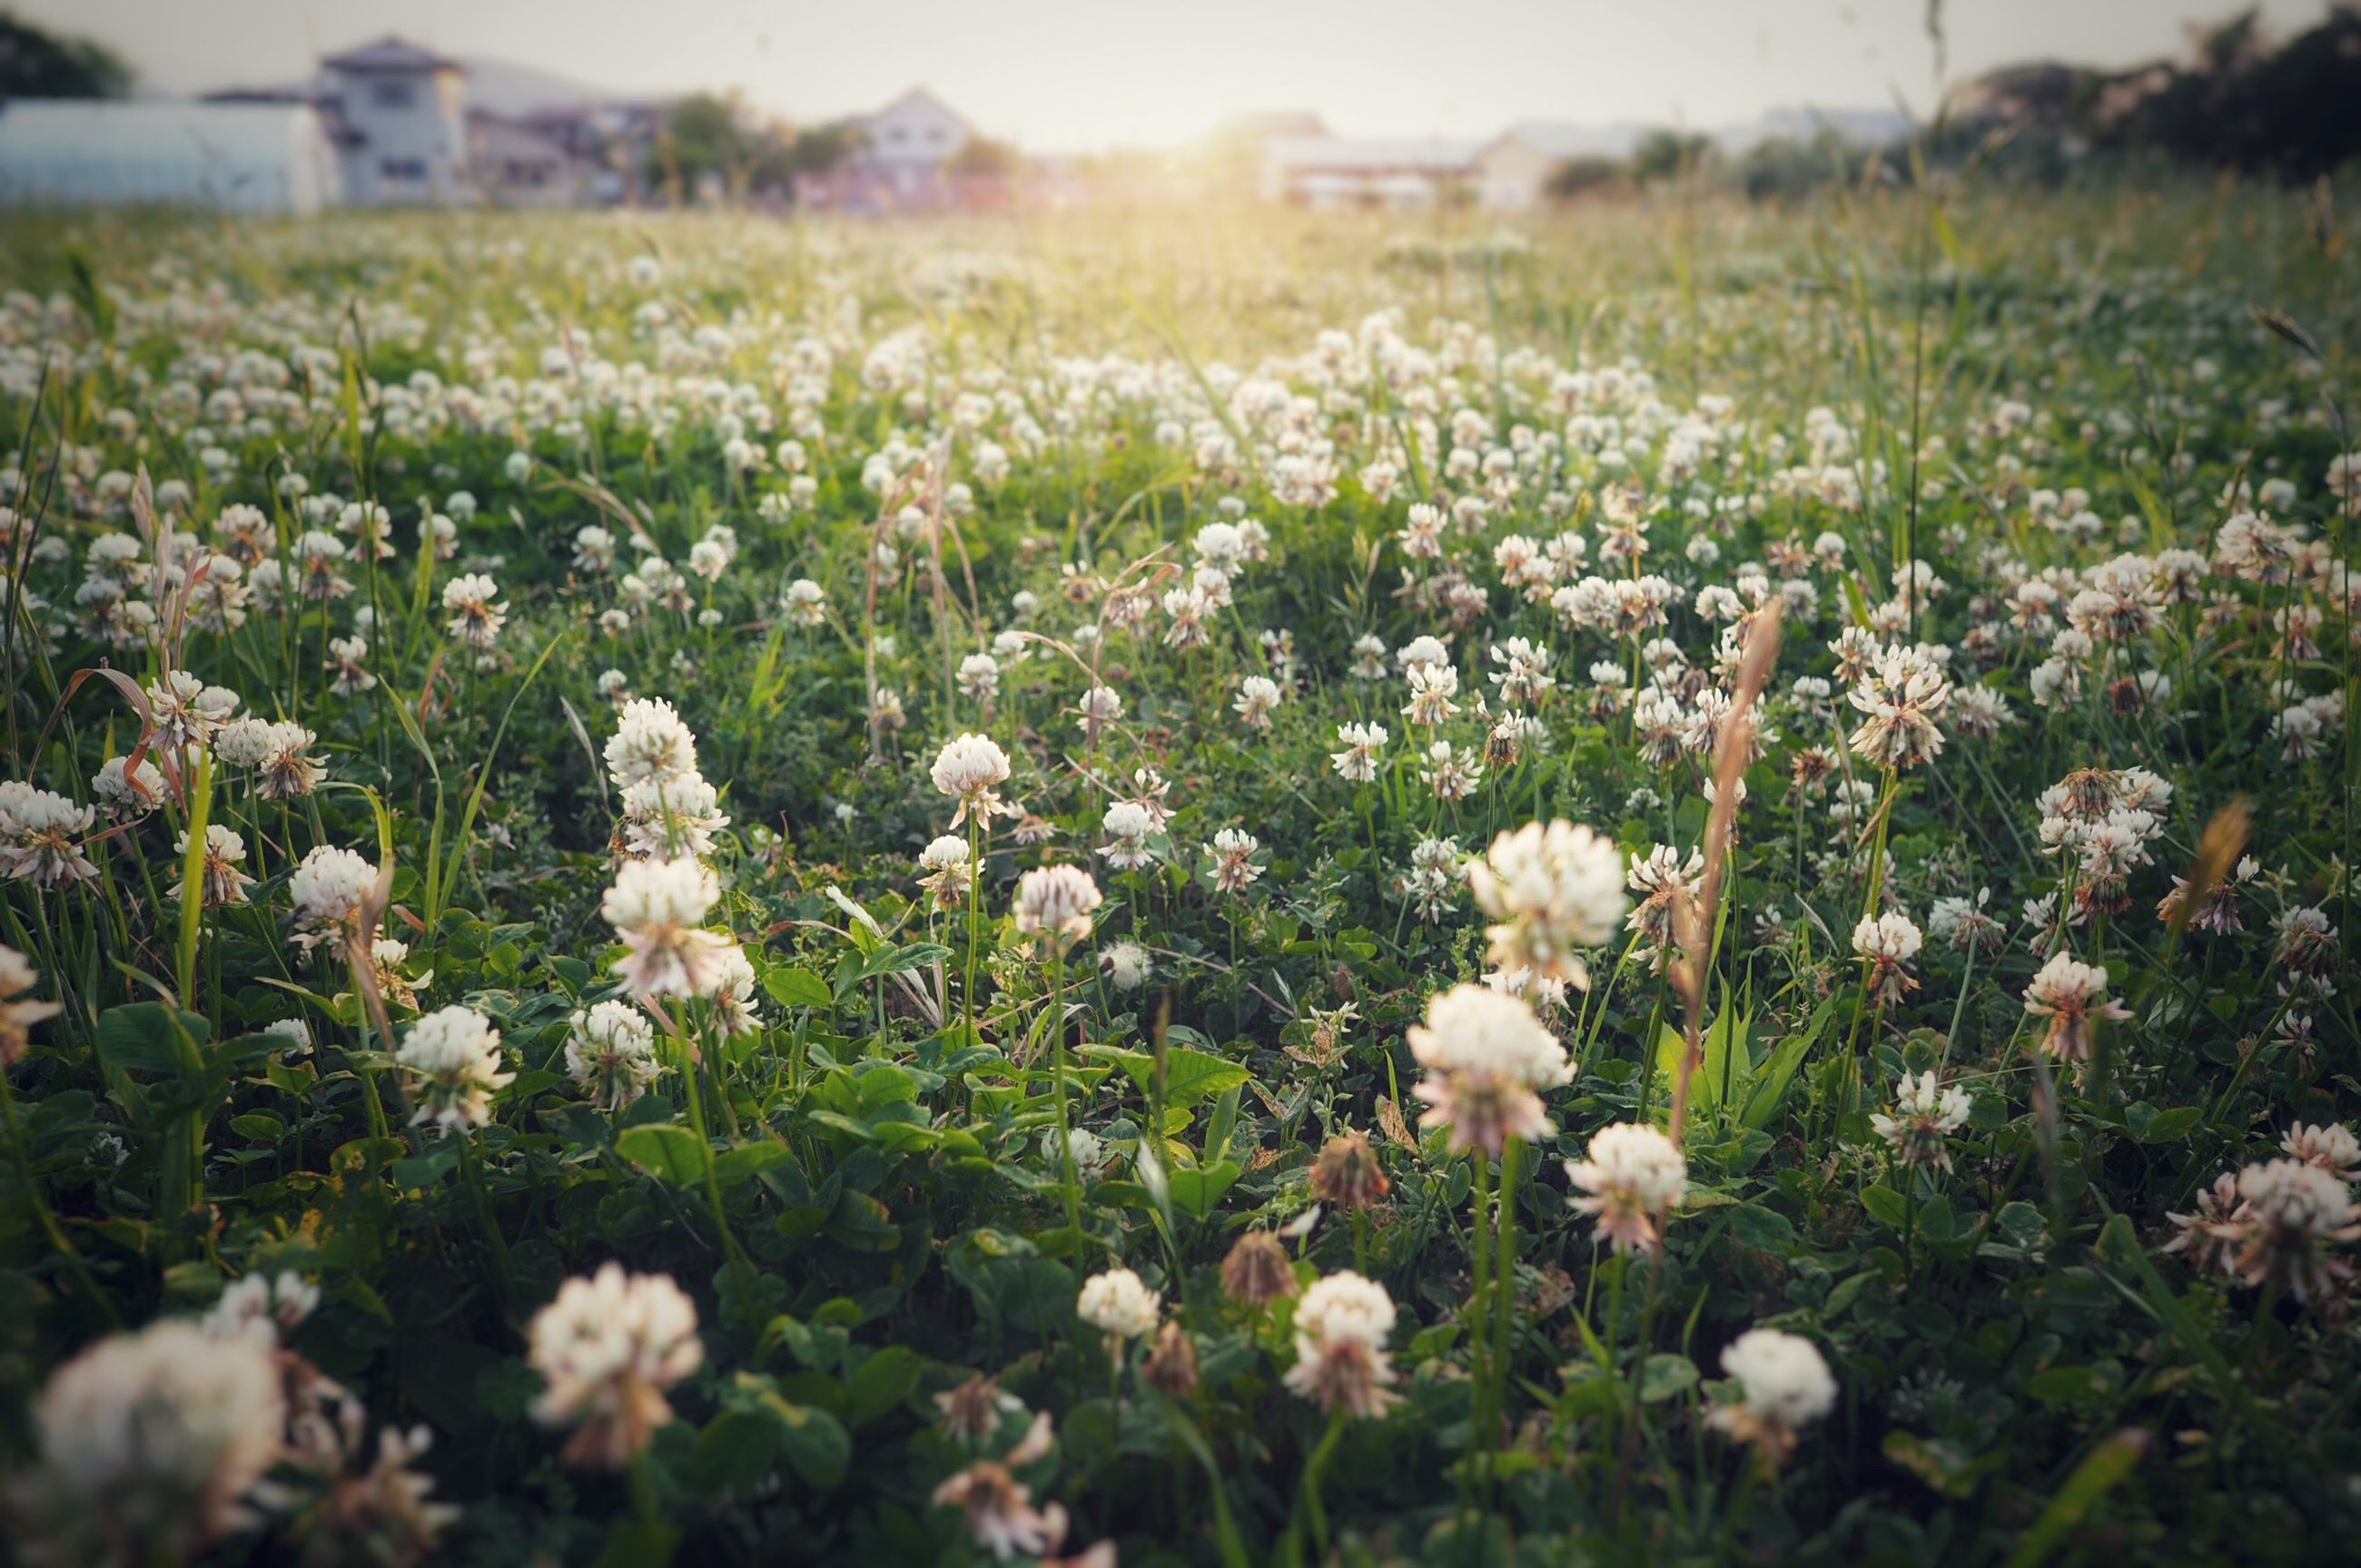 flower, flowering plant, plant, field, growth, land, beauty in nature, freshness, vulnerability, fragility, selective focus, nature, no people, day, close-up, landscape, tranquility, abundance, environment, white color, outdoors, flower head